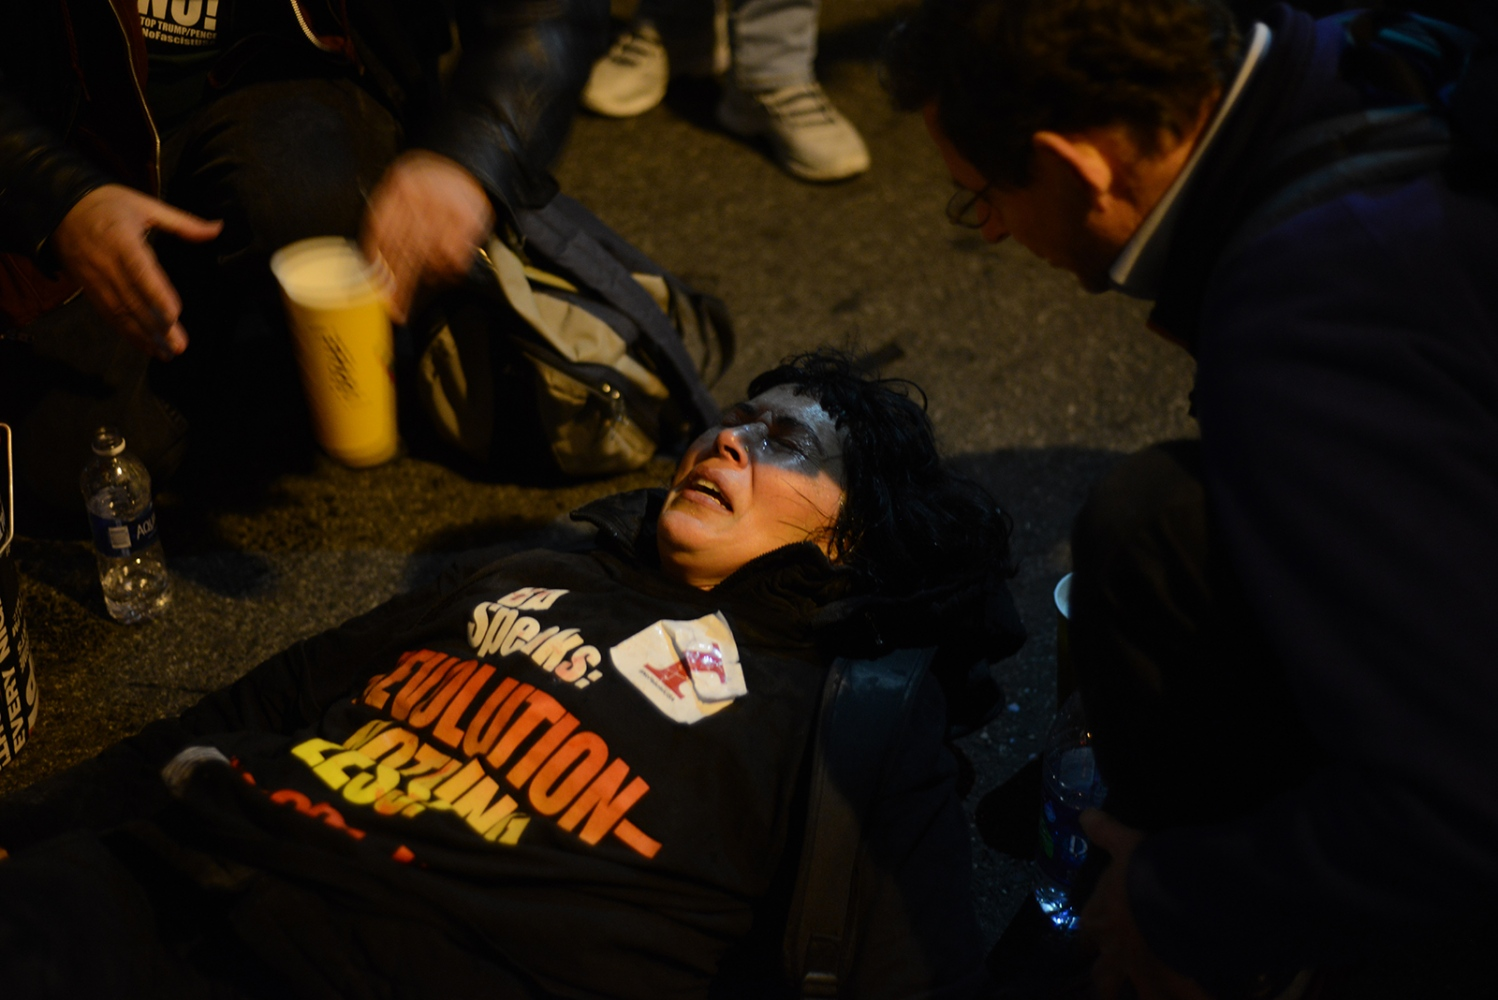 A protester receives medical attention after being tear gassed at a march against fascism in DC the eve before Donald Trump's Inauguration. January 19th, 2017